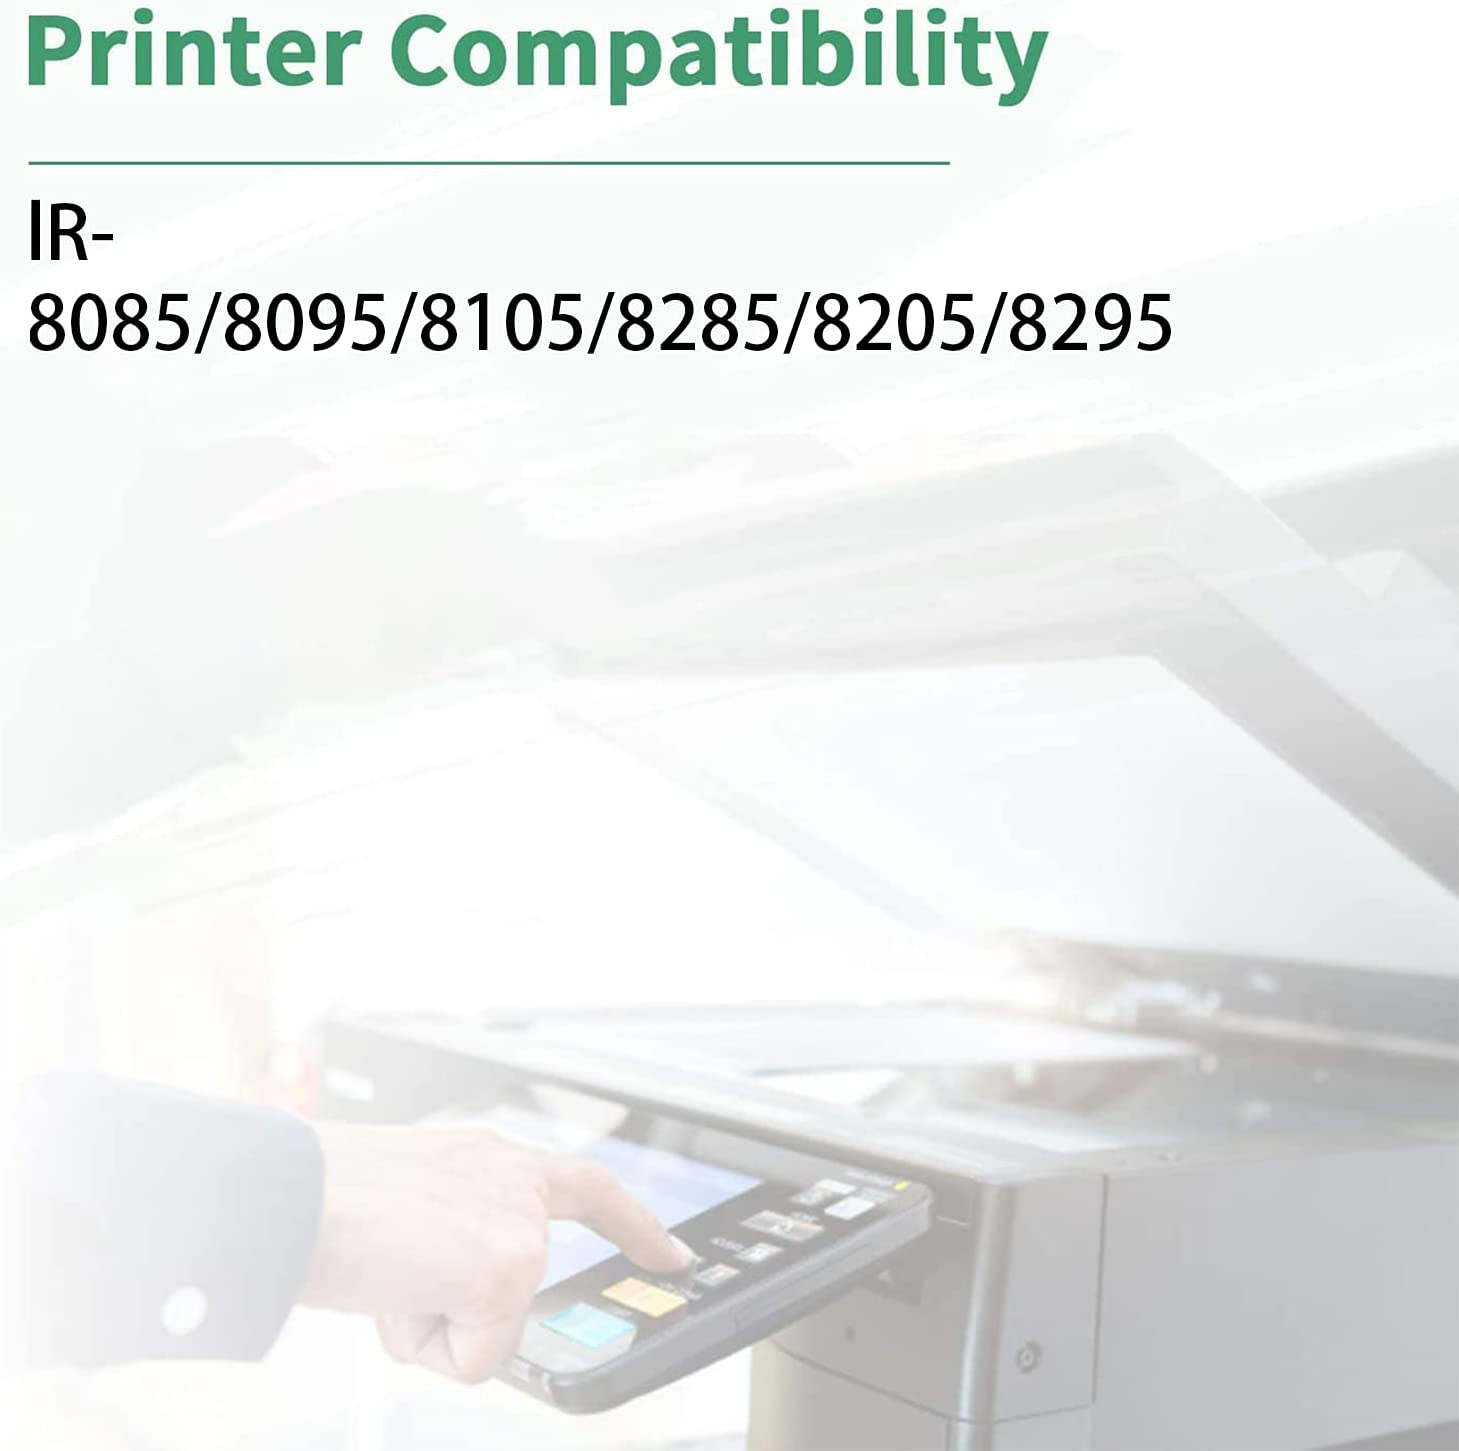 SSBY Compatible Toner Cartridge Replacement for Canon NPG-53 GPR-37 C-EXV35,to Use with IR 8085 8095 8105 8285 8205 8295 Printer,48000 Pages Black